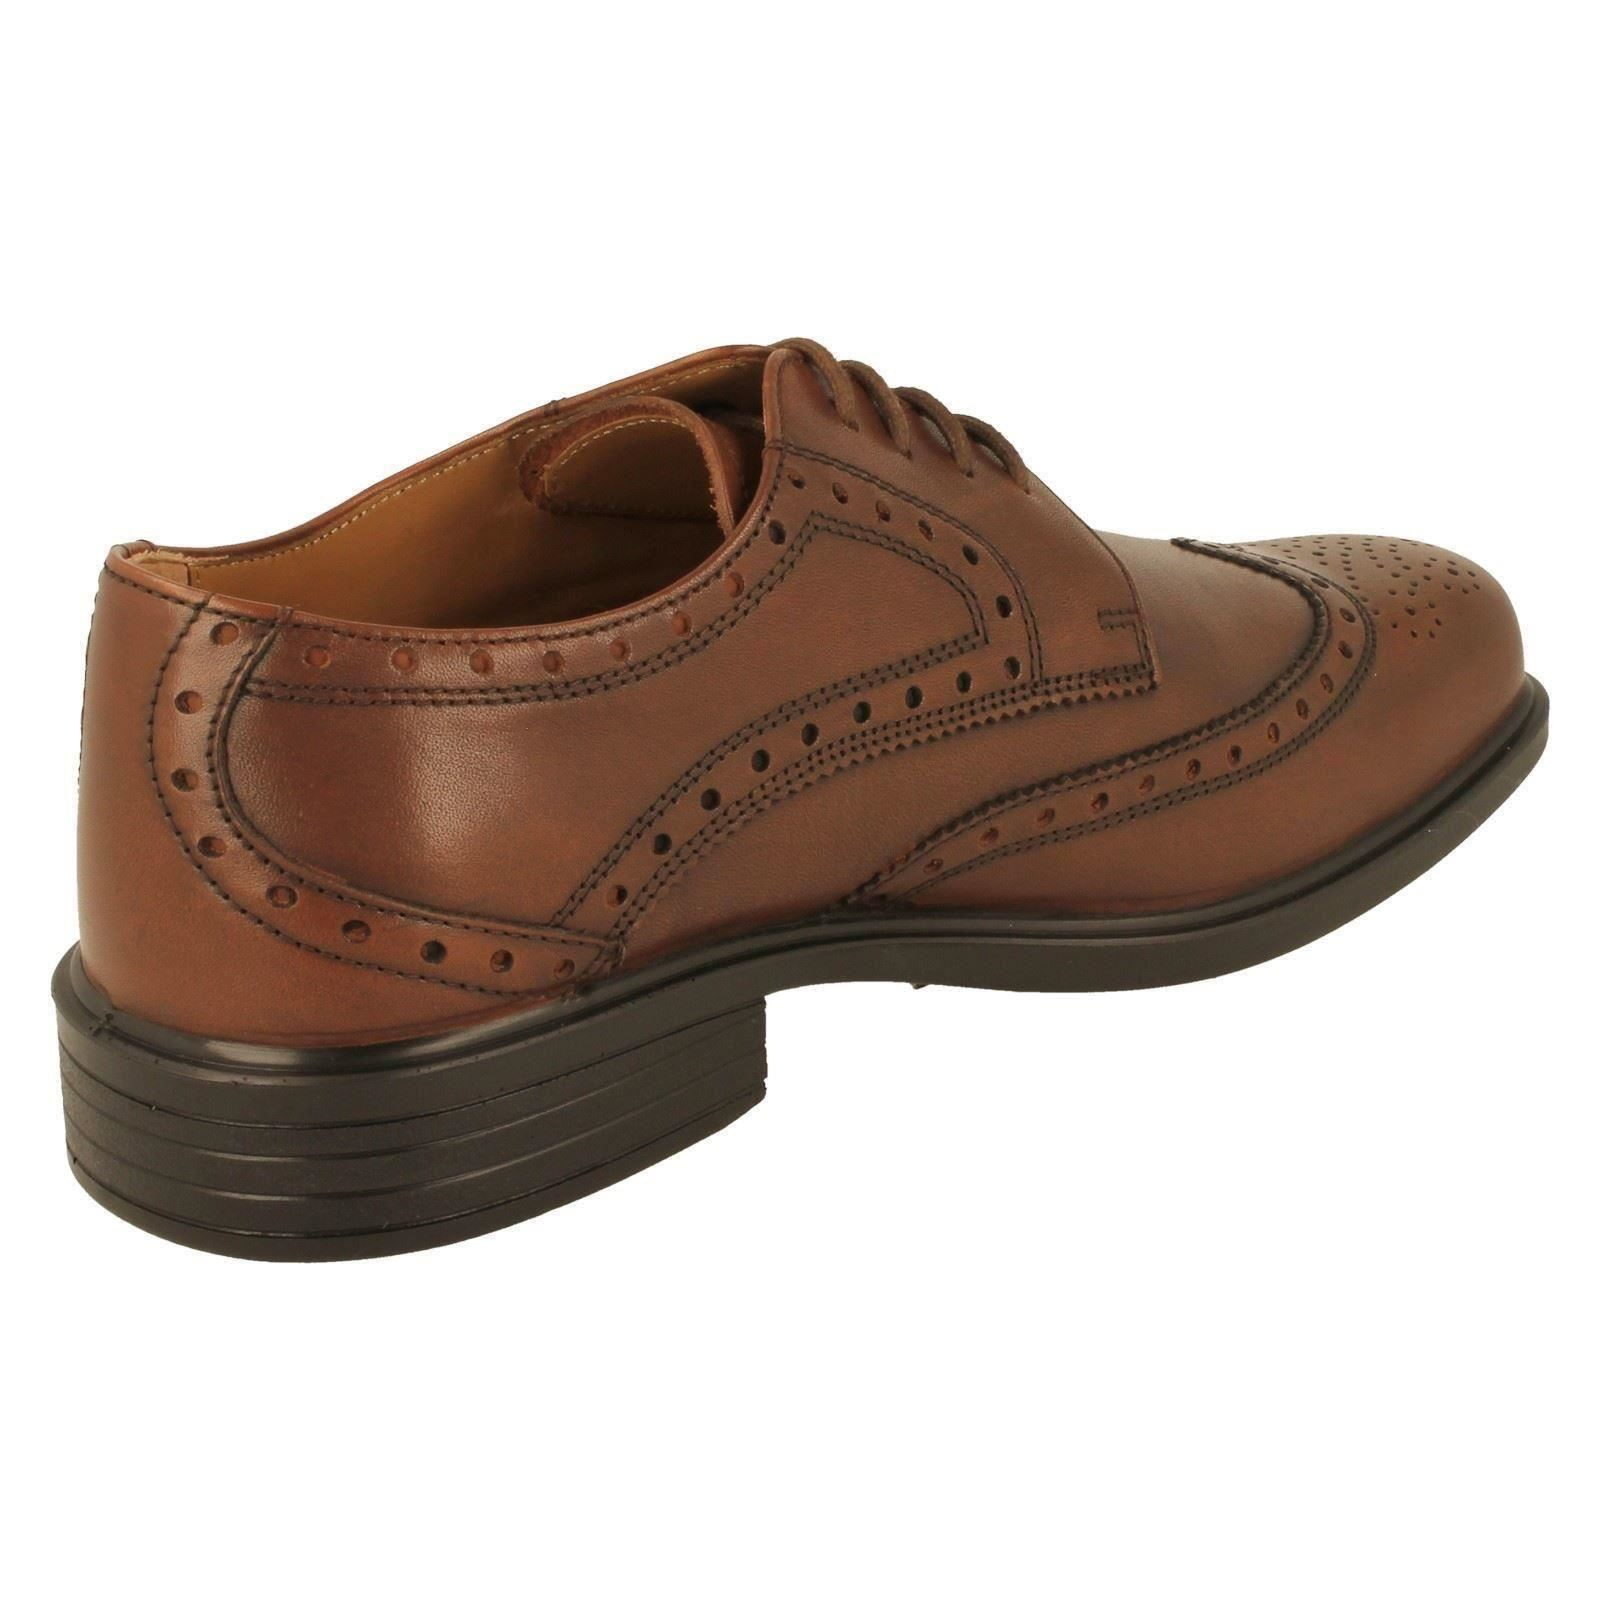 Uomo Style Padders Schuhes G Fit Style Uomo Reid-W aec54a